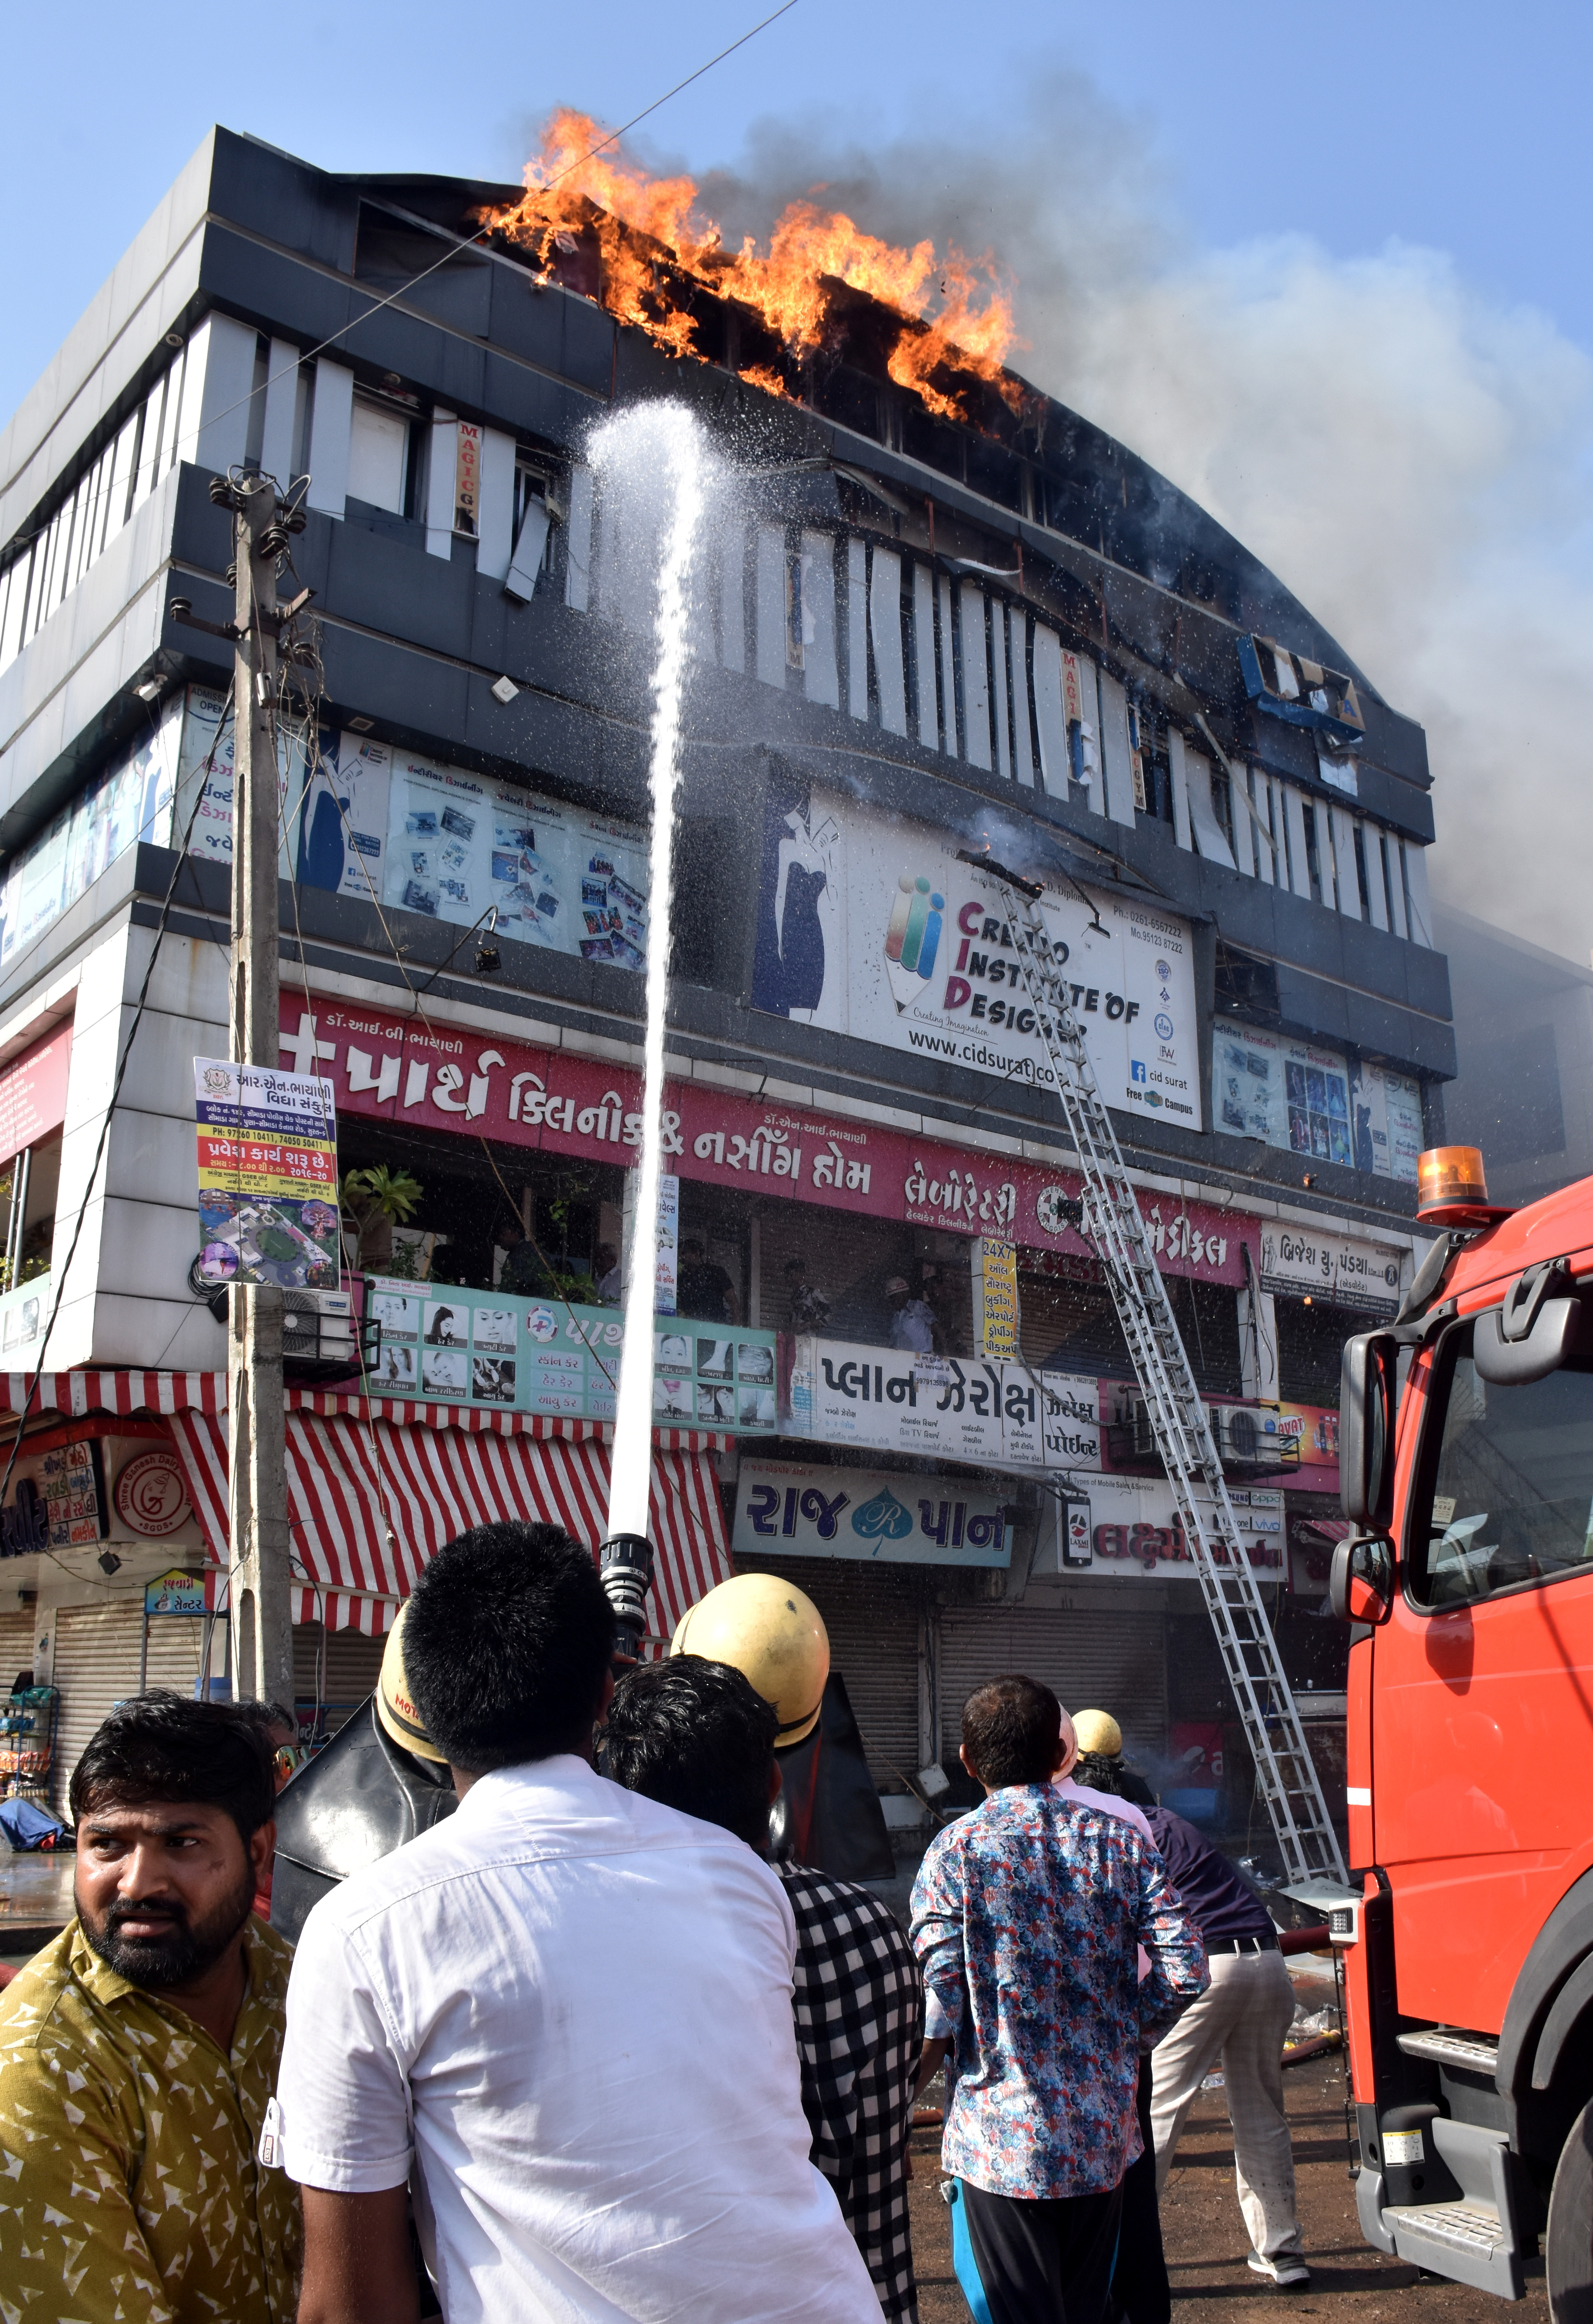 Firefighters douse a fire that broke out in a four-story commercial building in Surat, in the western state of Gujarat, India, May 24, 2019.